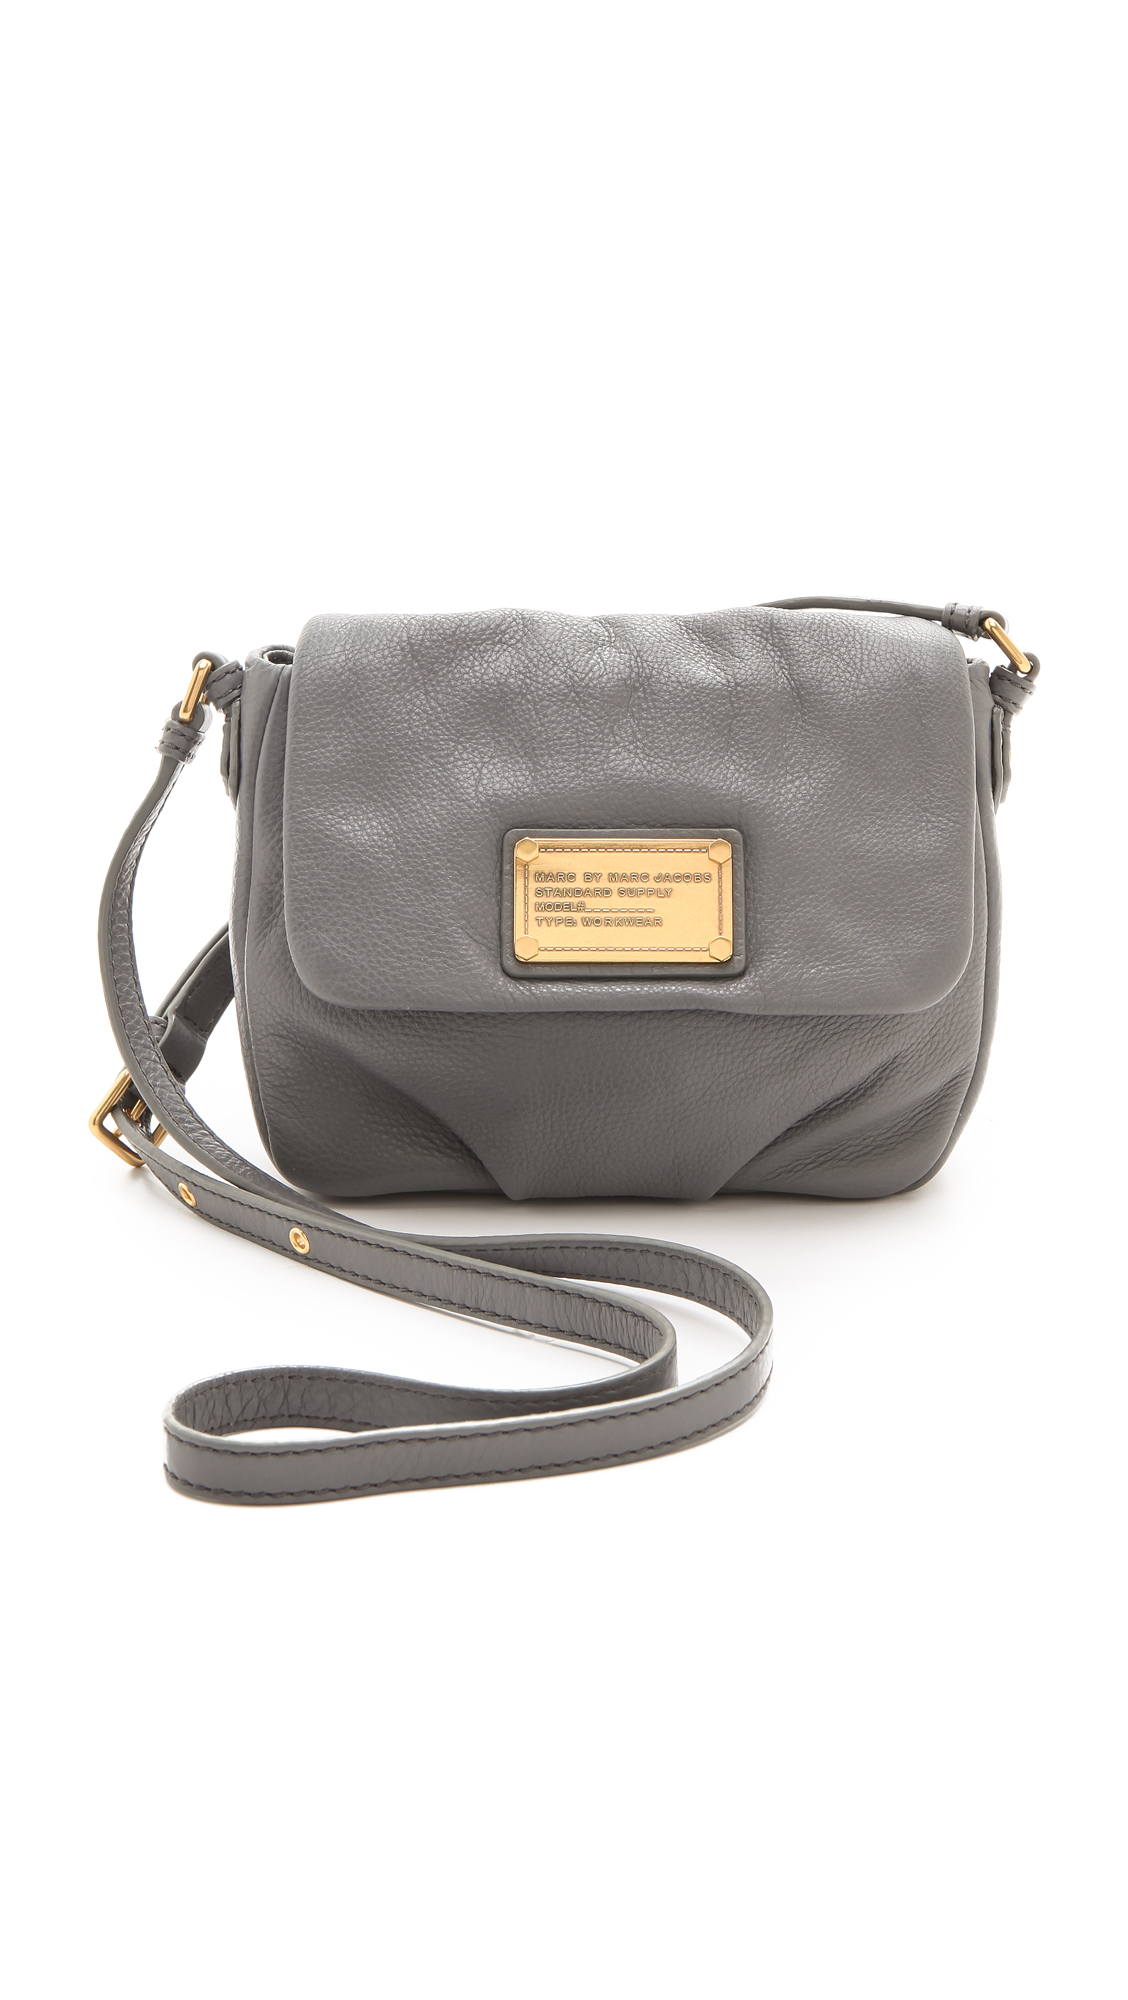 087a436c501 Marc By Marc Jacobs Classic Q Isabelle Bag in Gray - Lyst